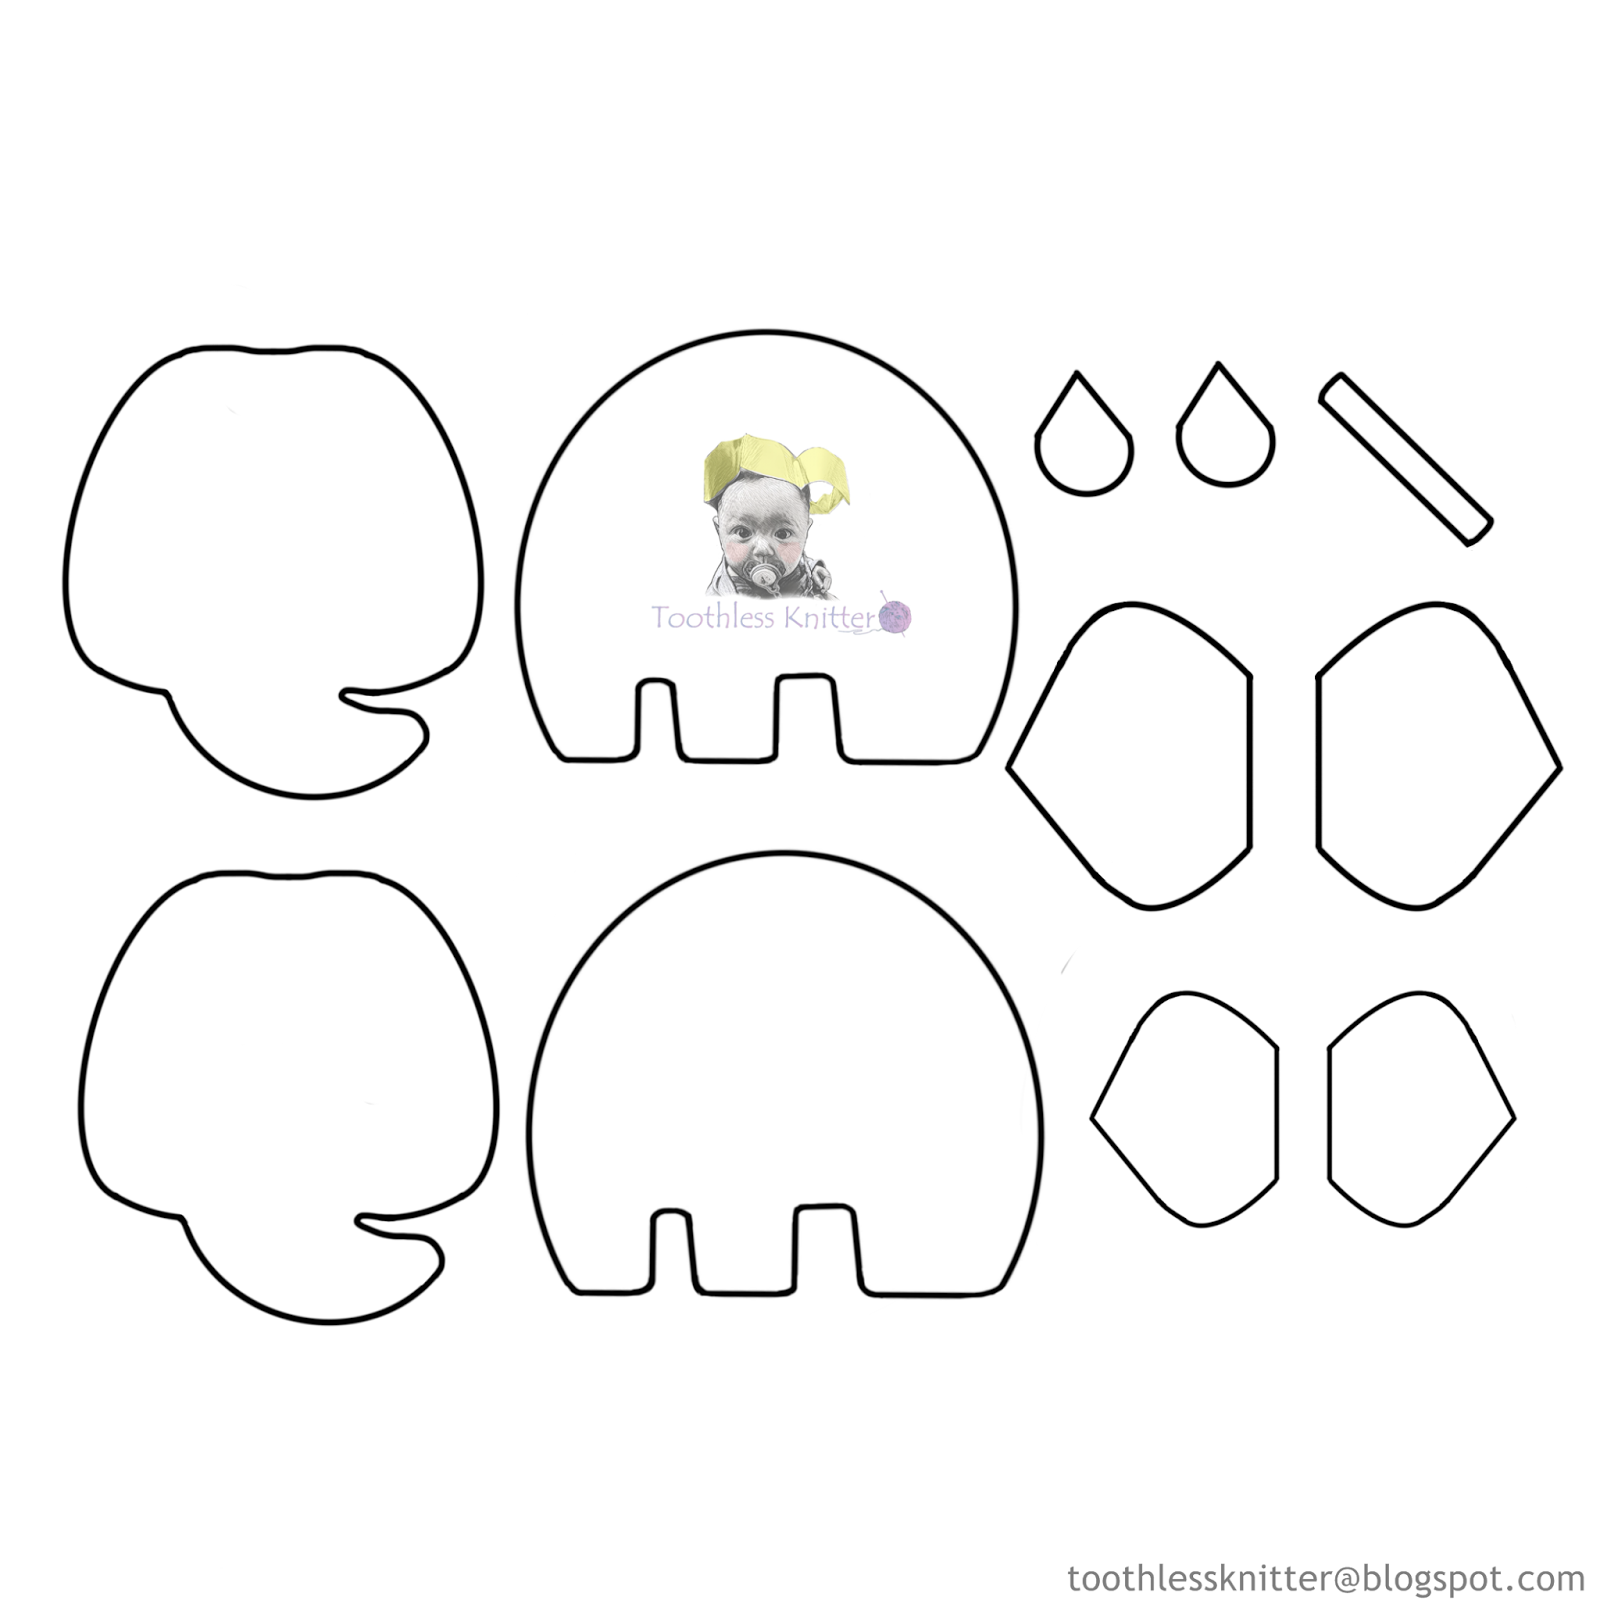 Dibujar Caras De Dibujos Animados 957339057730 further 2012 10 01 archive further How To Make Decorative Throw Pillows as well Felt Baby Name Banner Elephant likewise Art40000. on ways to sew